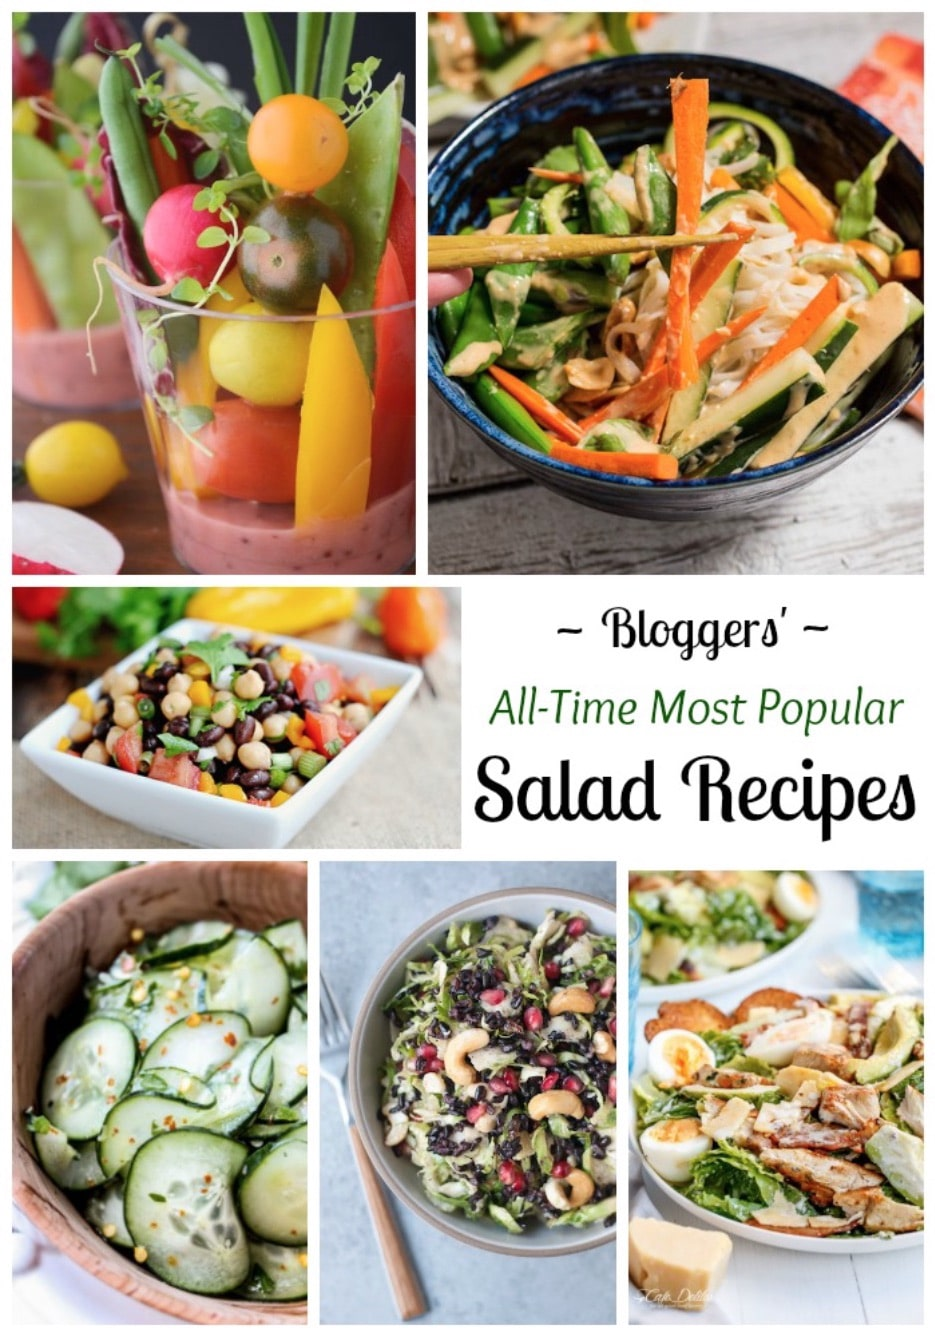 You'll love these #1 most popular, healthy salad recipes from top bloggers! From spring's rhubarb, to all those gorgeous summer veggies, to cranberries and butternut squash for the holidays - these salad recipes are year-round favorites! | www.TwoHealthyKitchens.com